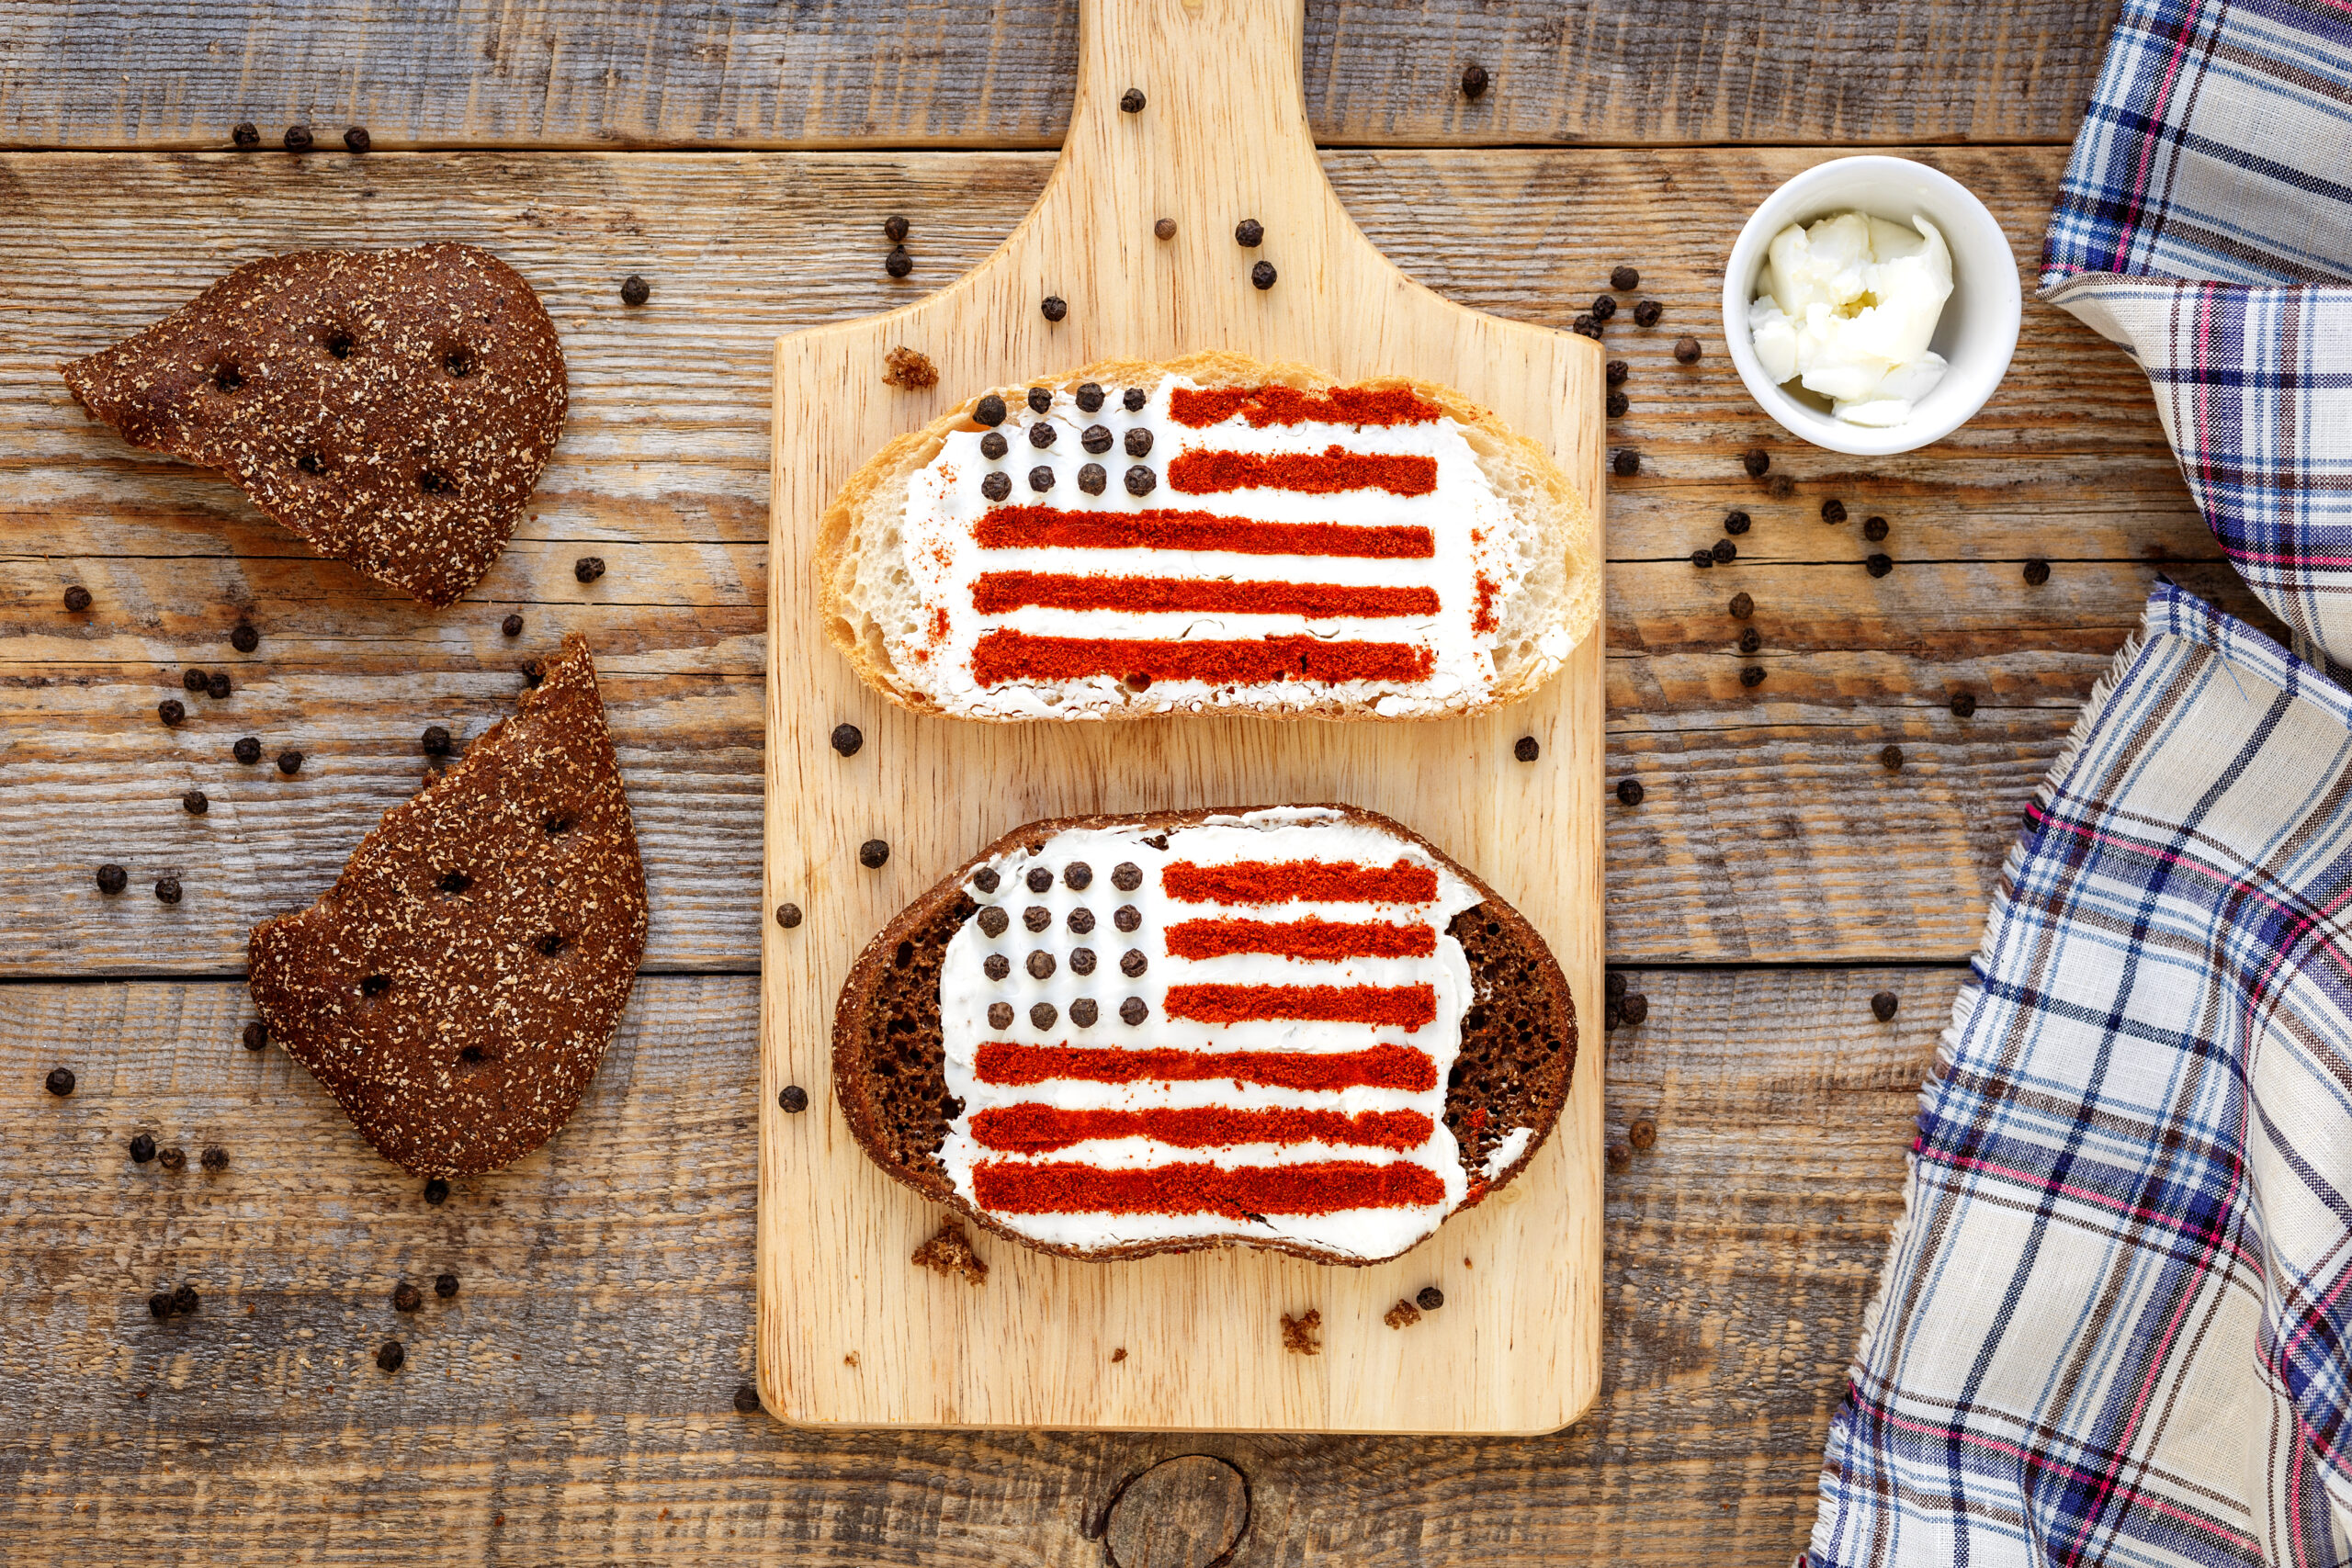 Two sandwiches with image of american flag.